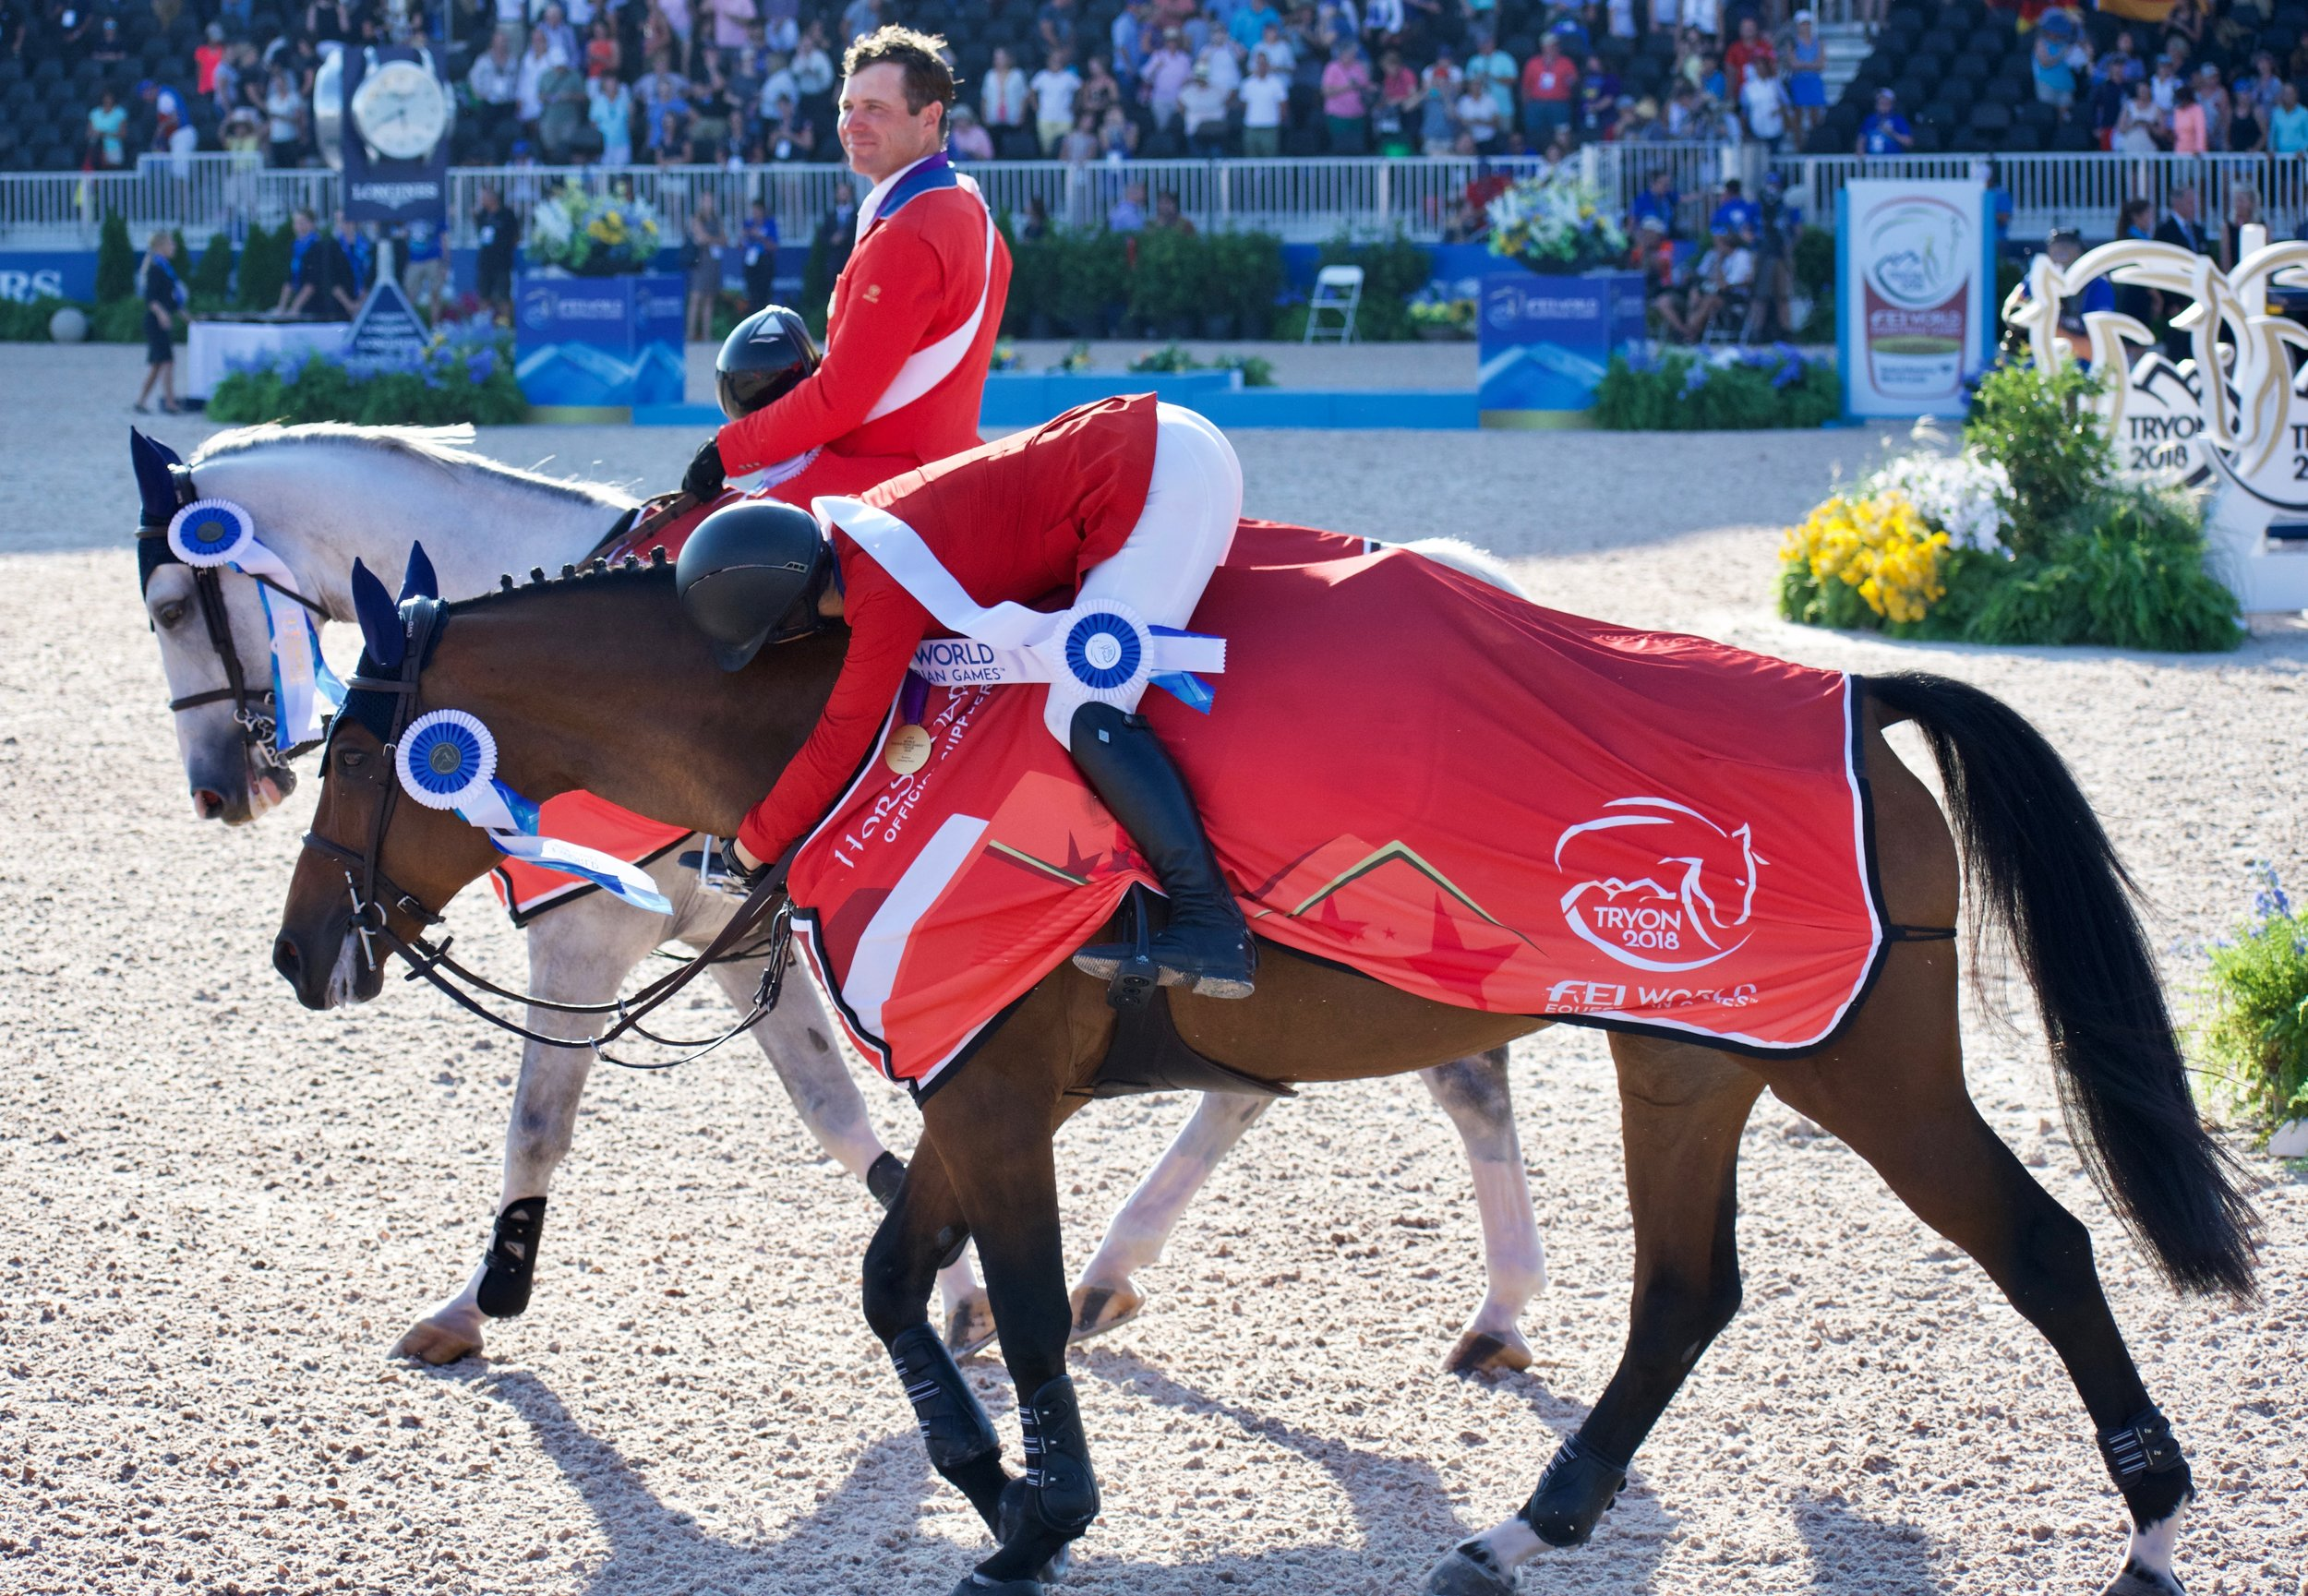 Adrienne had no shortage of hugs for her mare especially after winning the coveted gold.